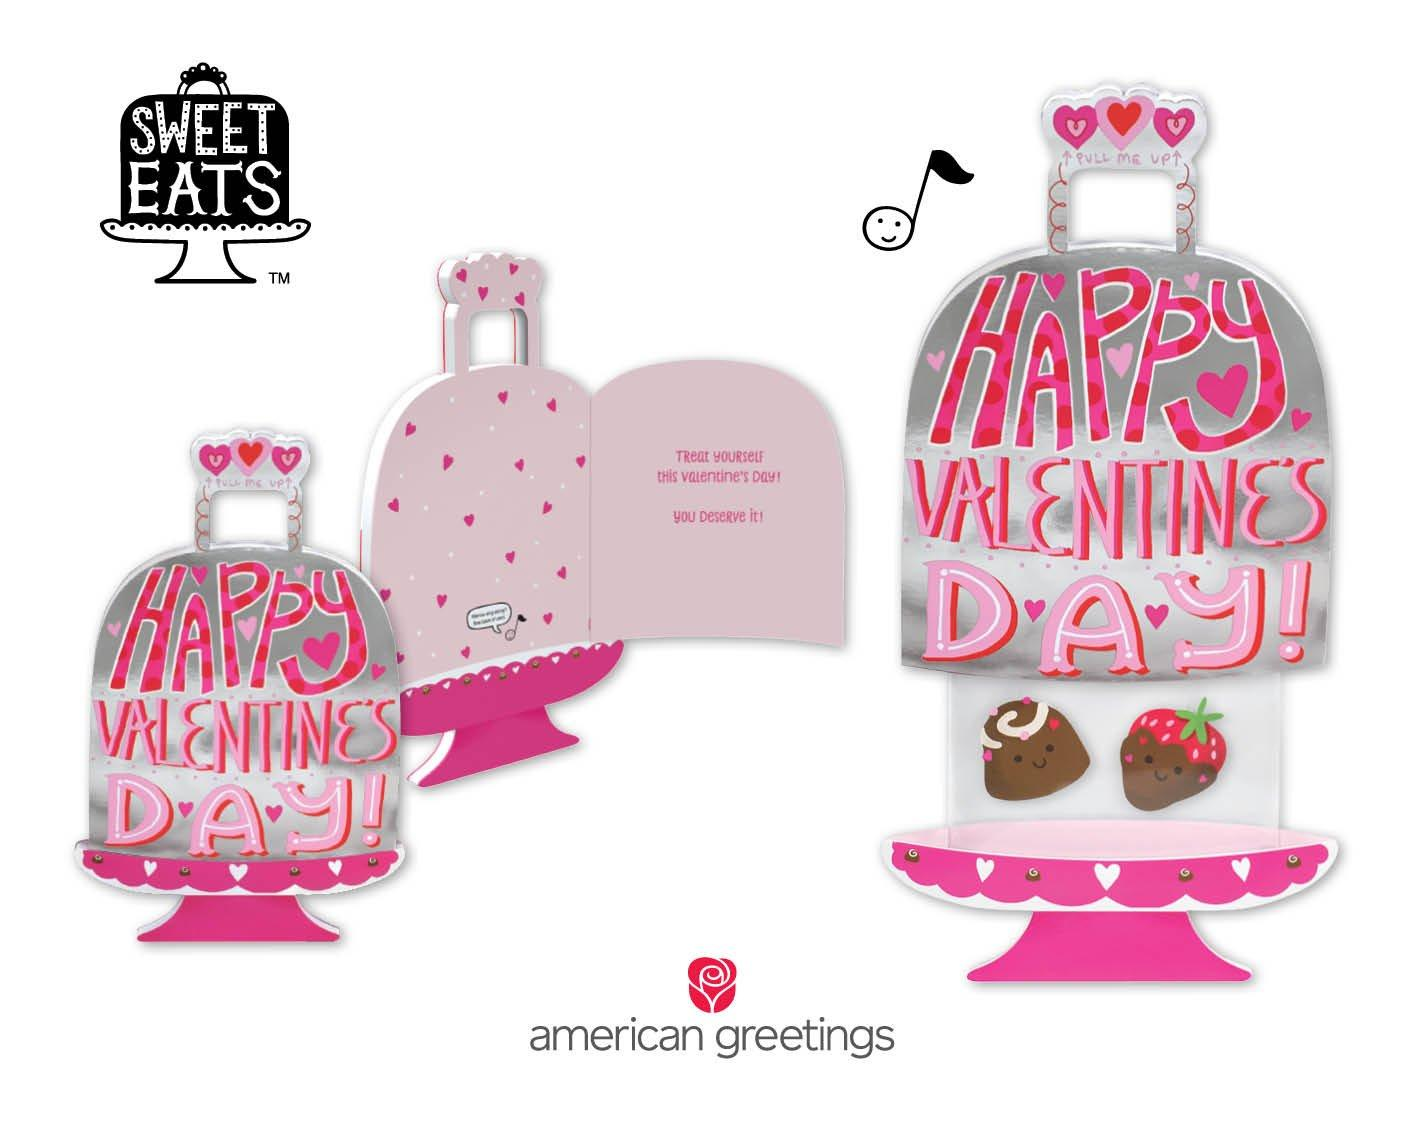 Make Their Valentines Day Delicious With New Sweet Eatstm Cards